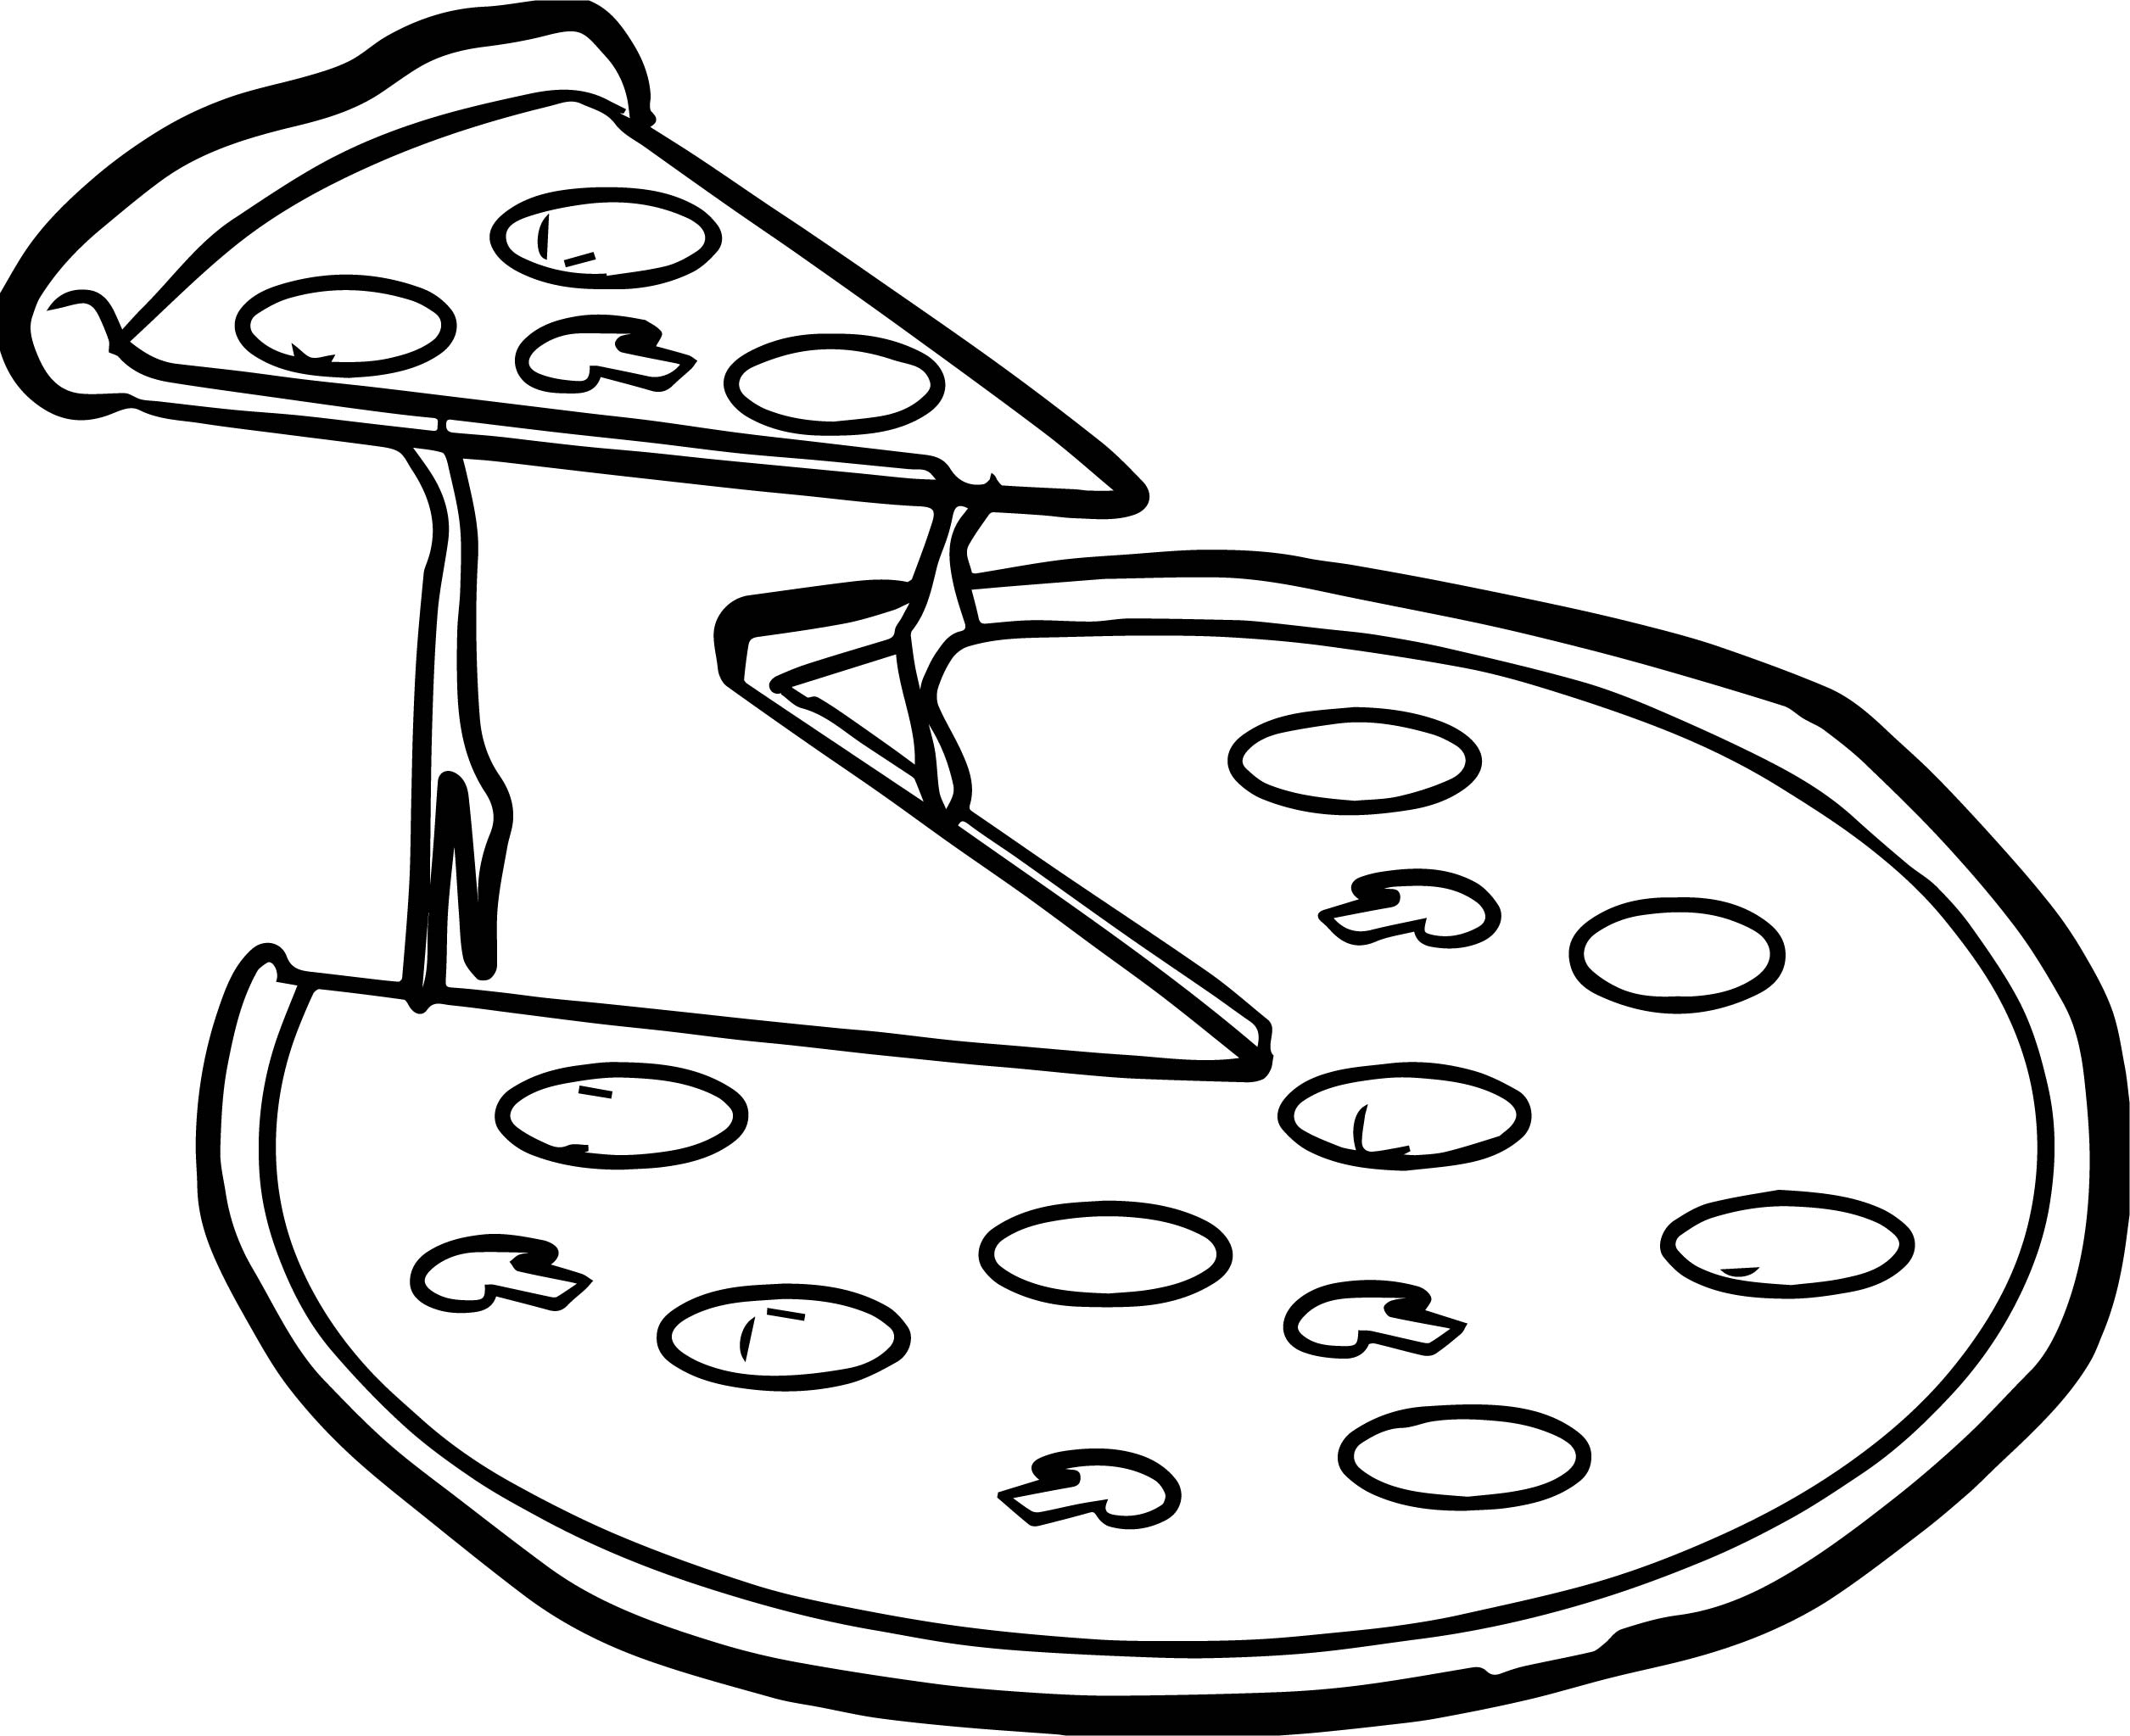 Whole Pizza Coloring Page | Wecoloringpage